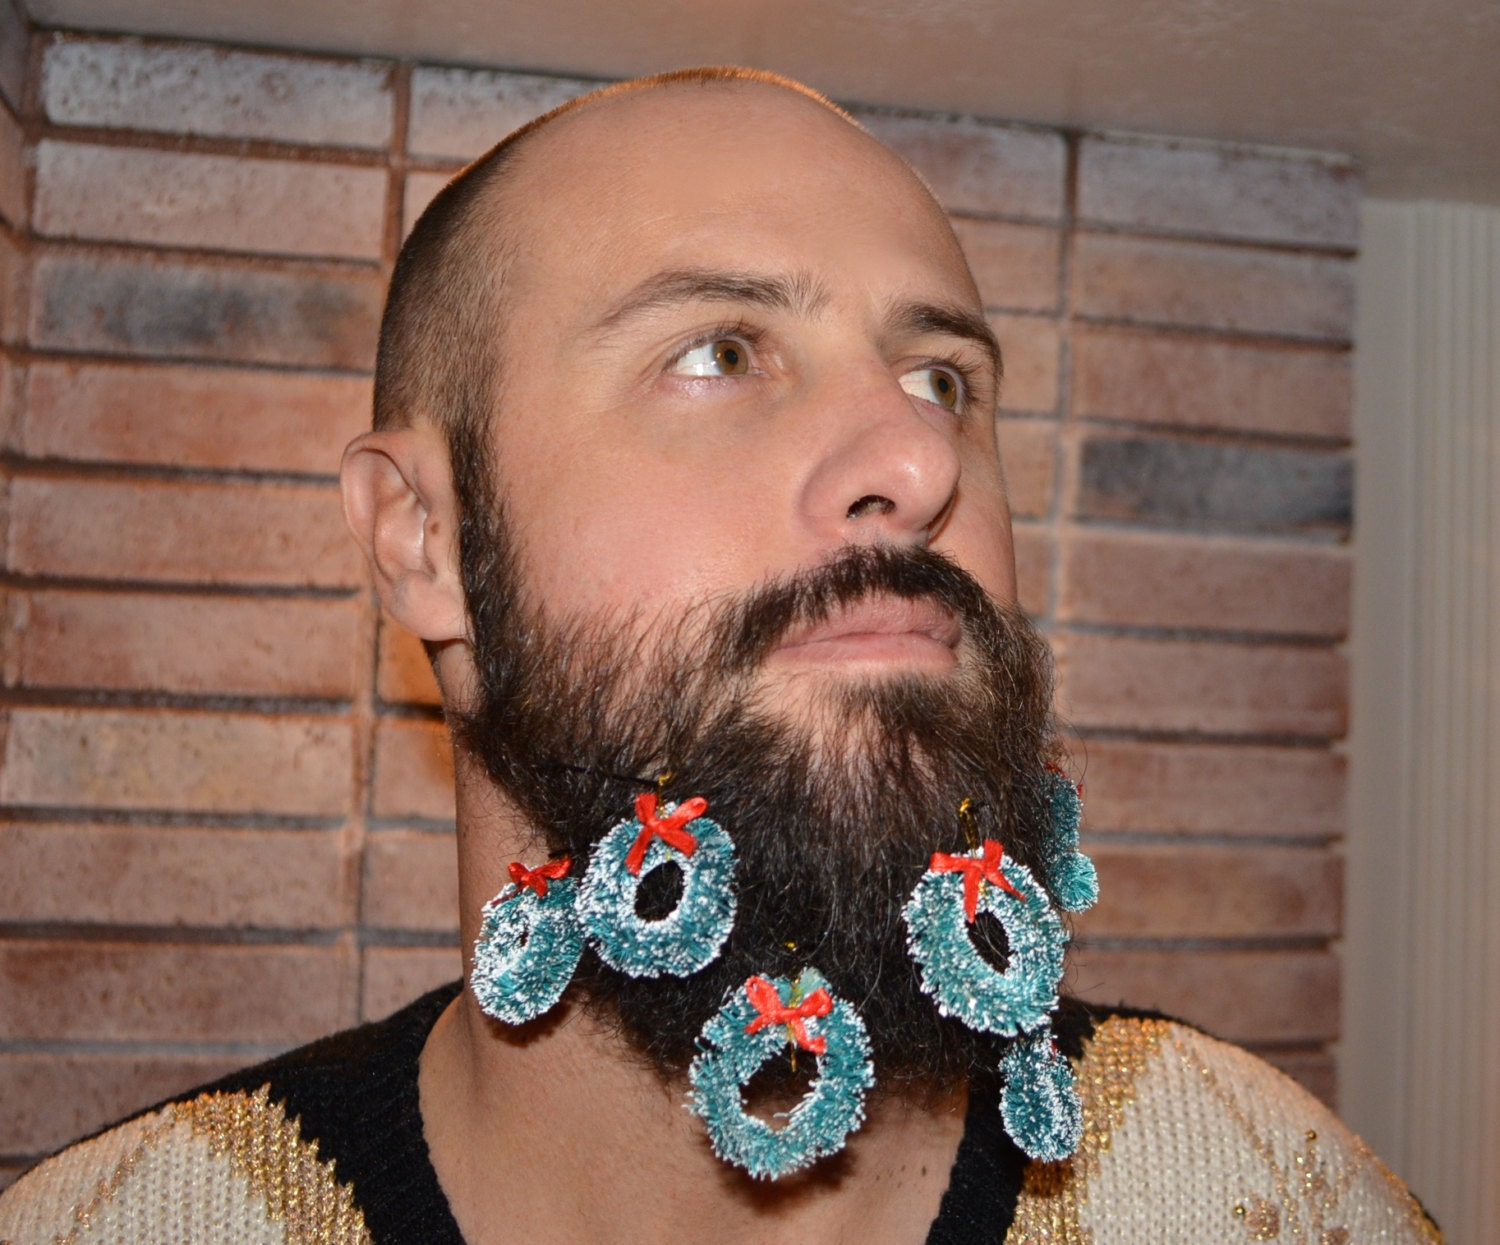 Beard Ornaments Wreaths beard dangles lumbersexual Beard Ornaments